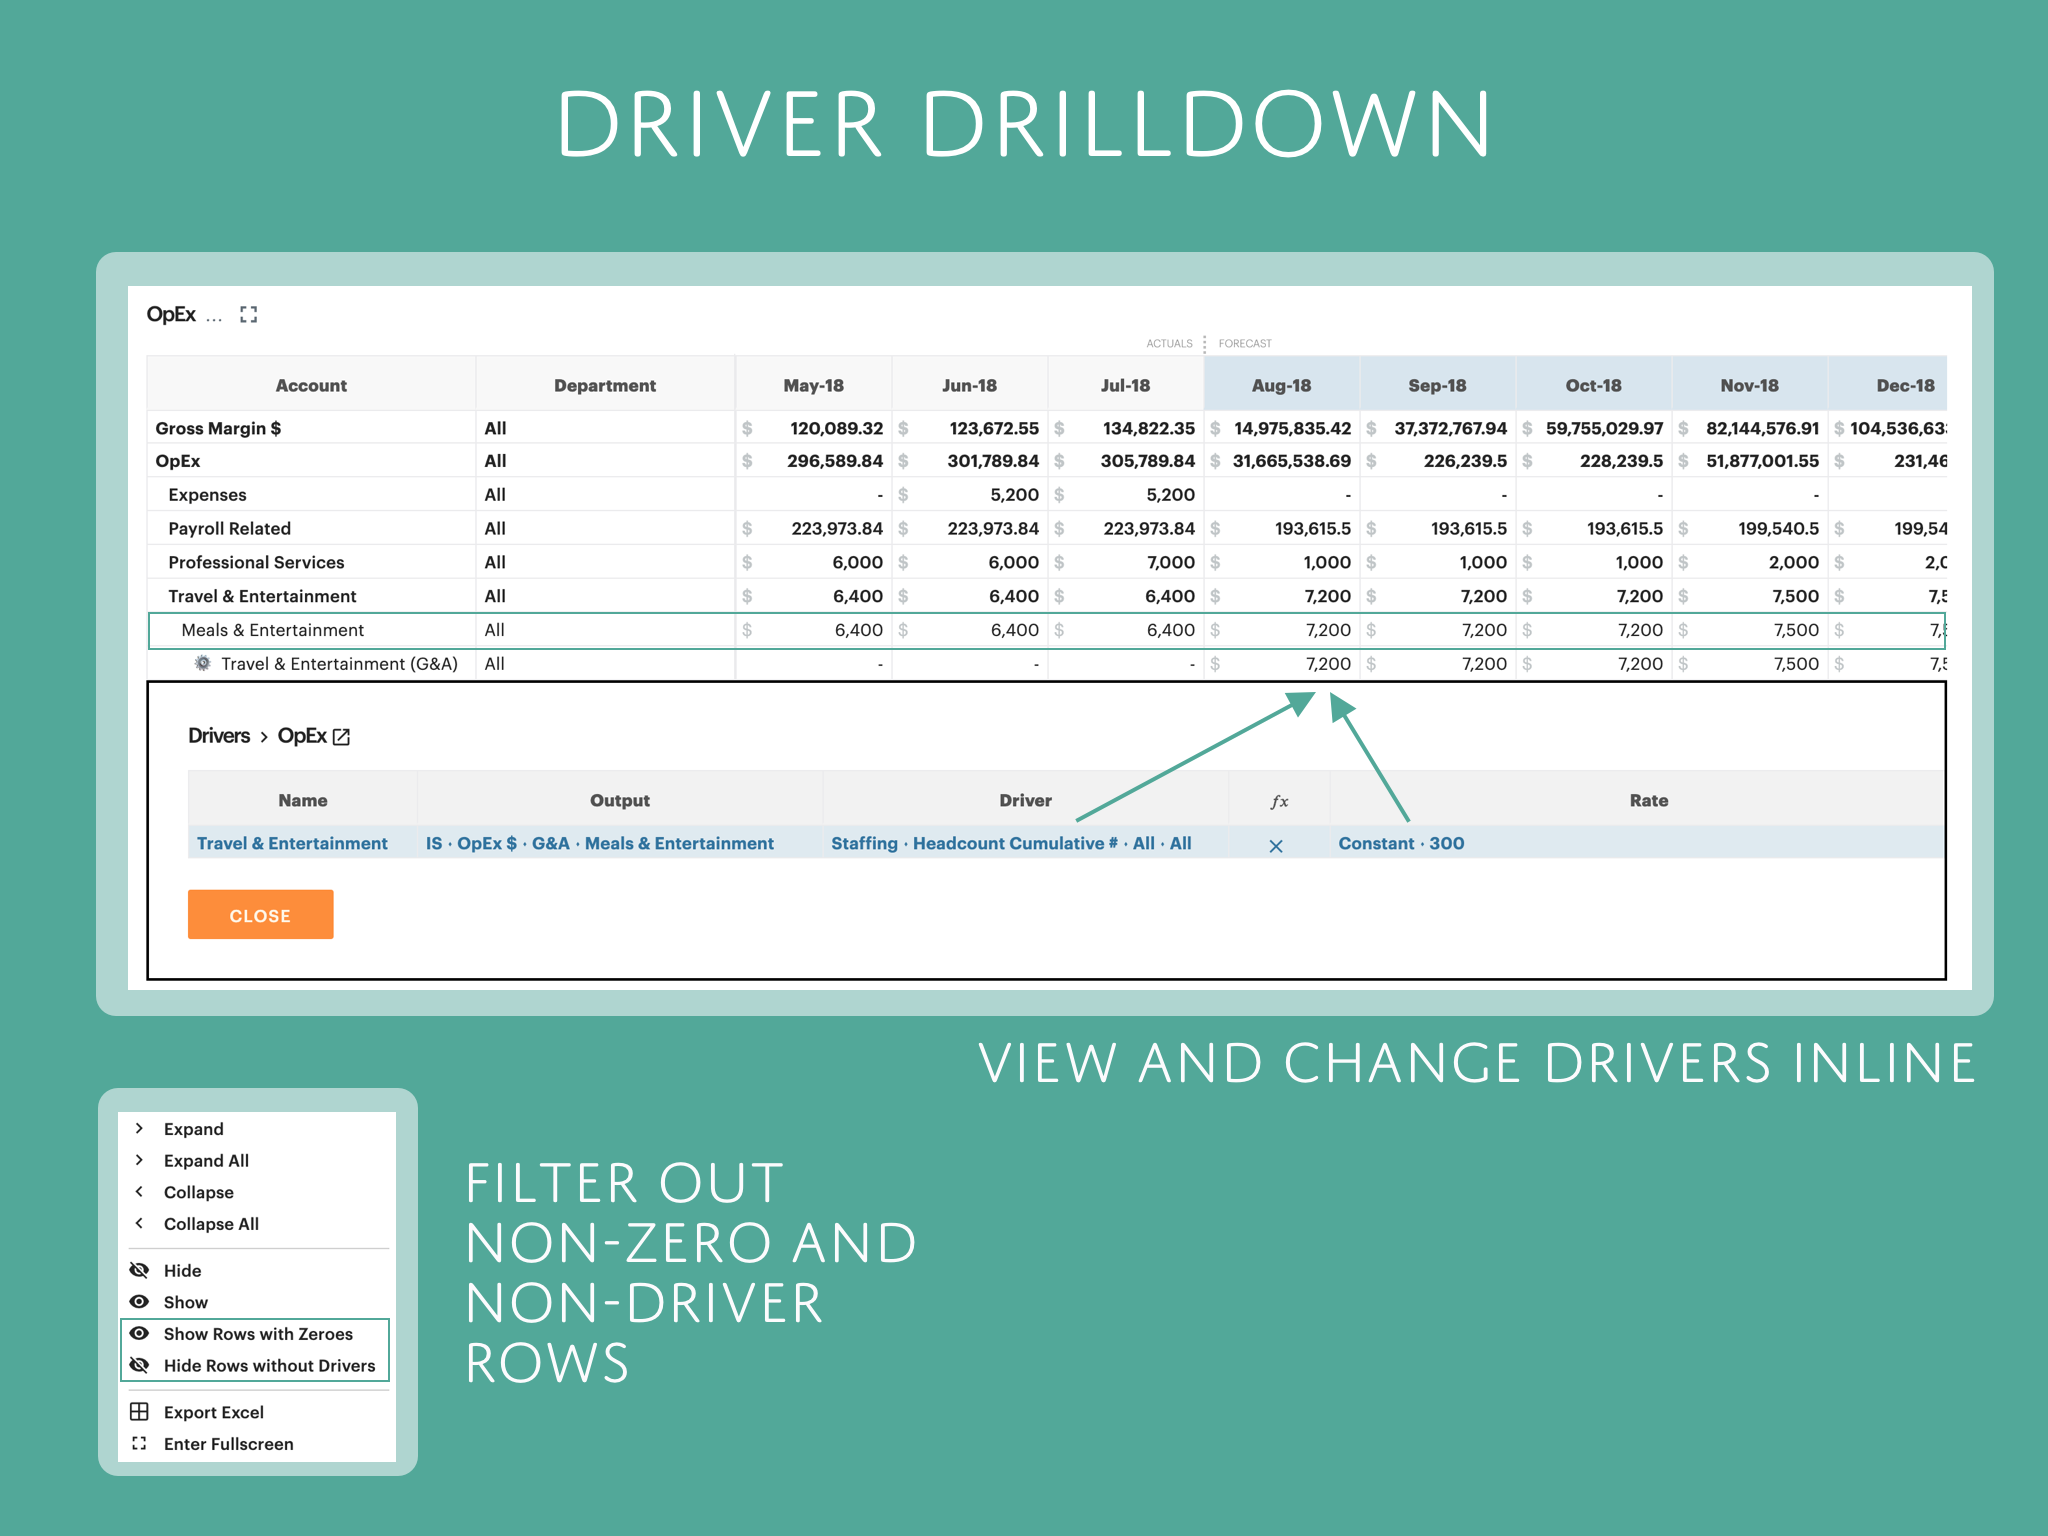 Drivers Drilldown